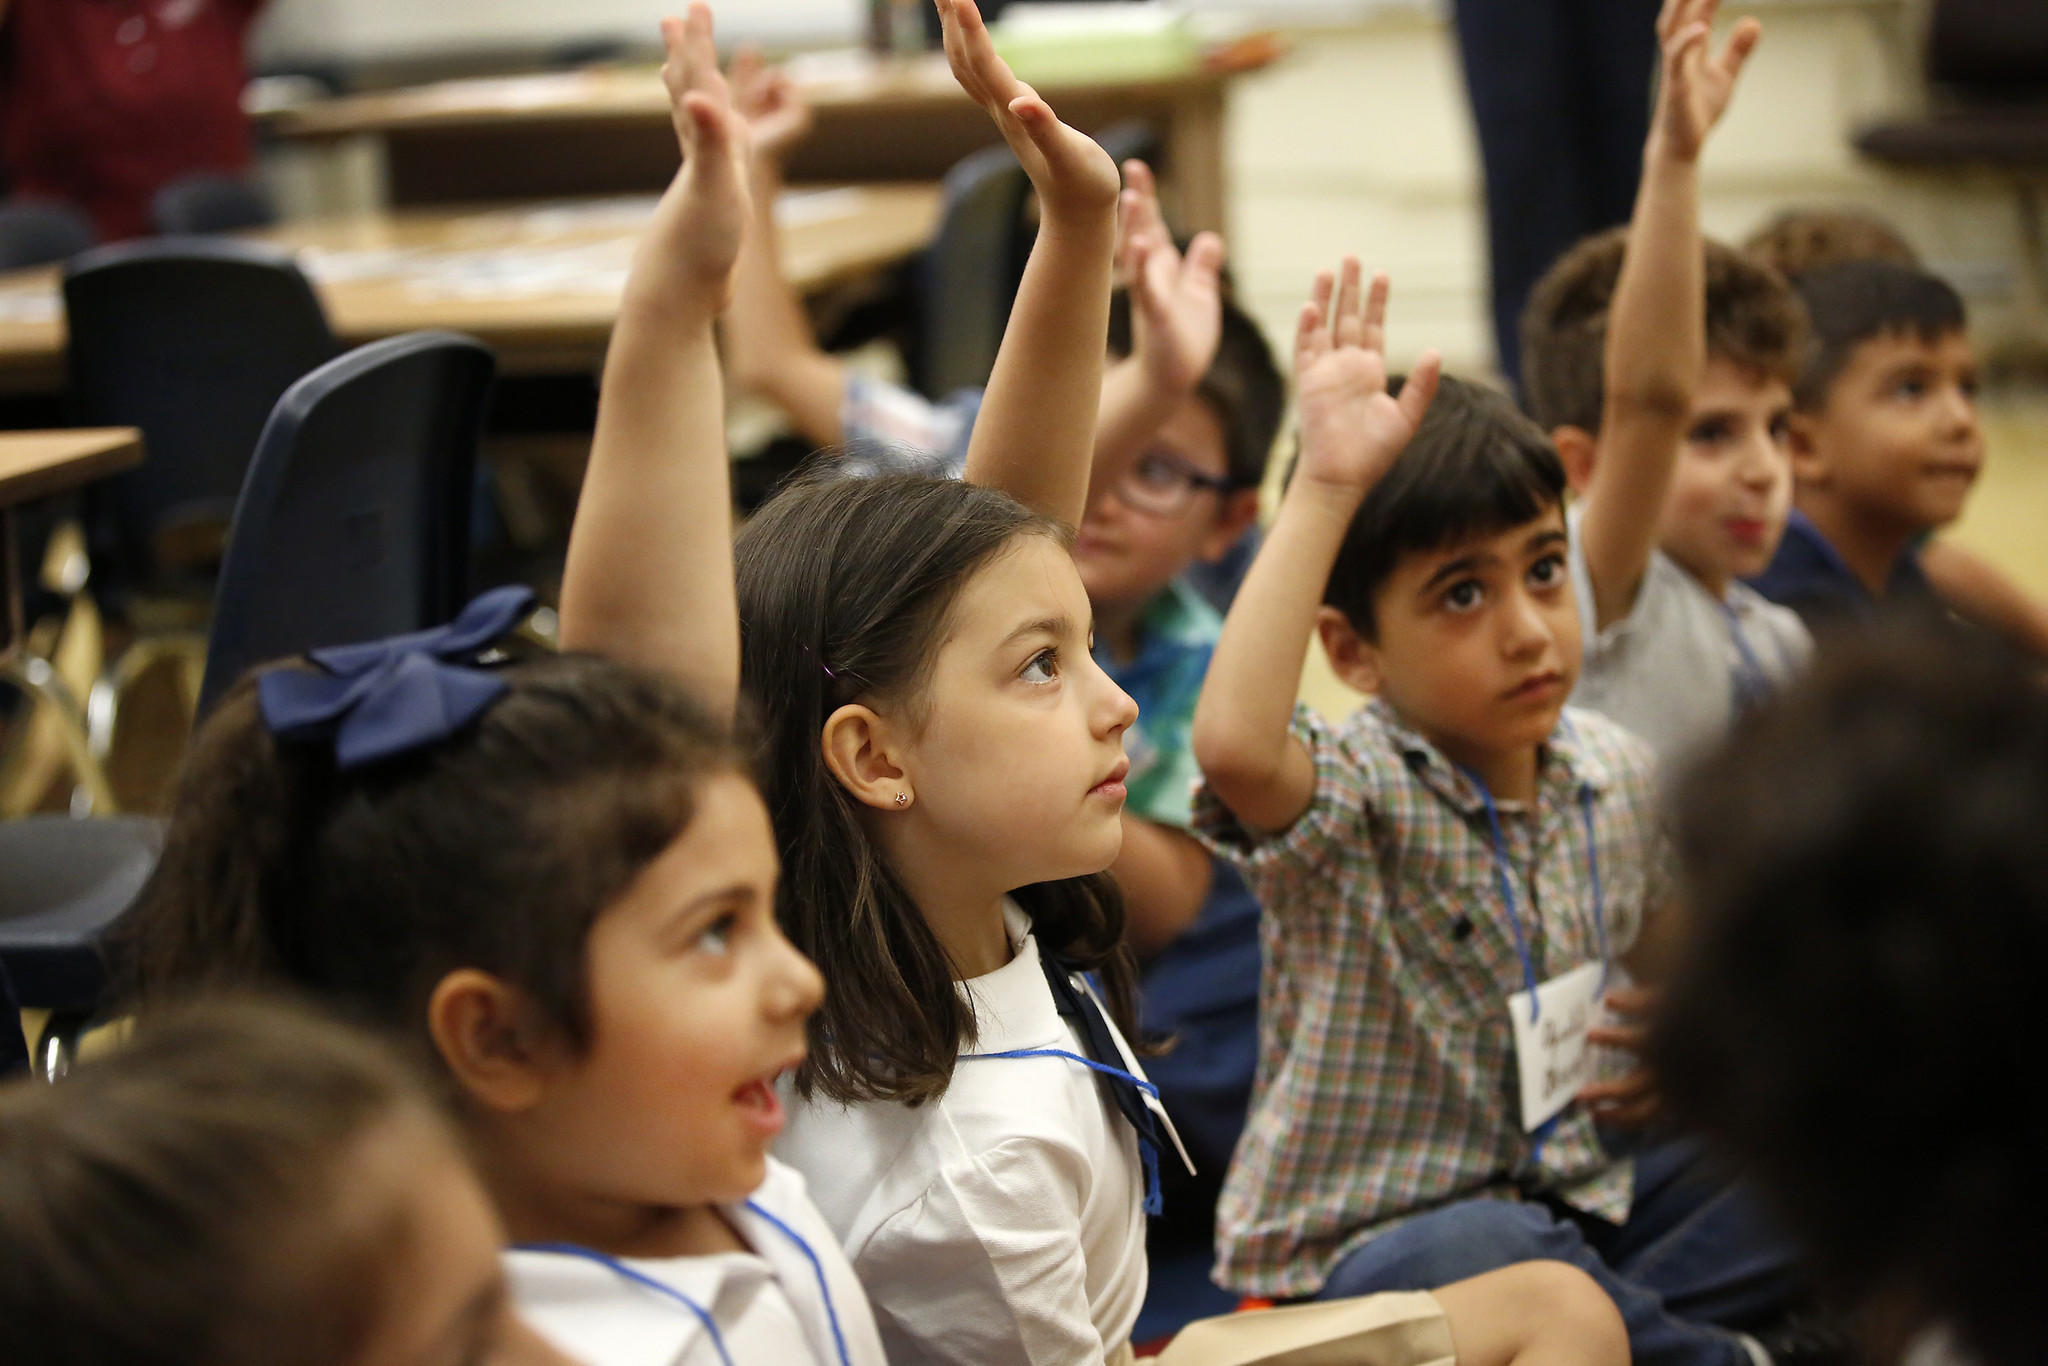 Kindergarten student Mary Saroyan, center, raises her hand in LAUSD's first English/Armenian dual-language program at Mountain View Elementary School in Tujunga. (Al Seib / Los Angeles Times)